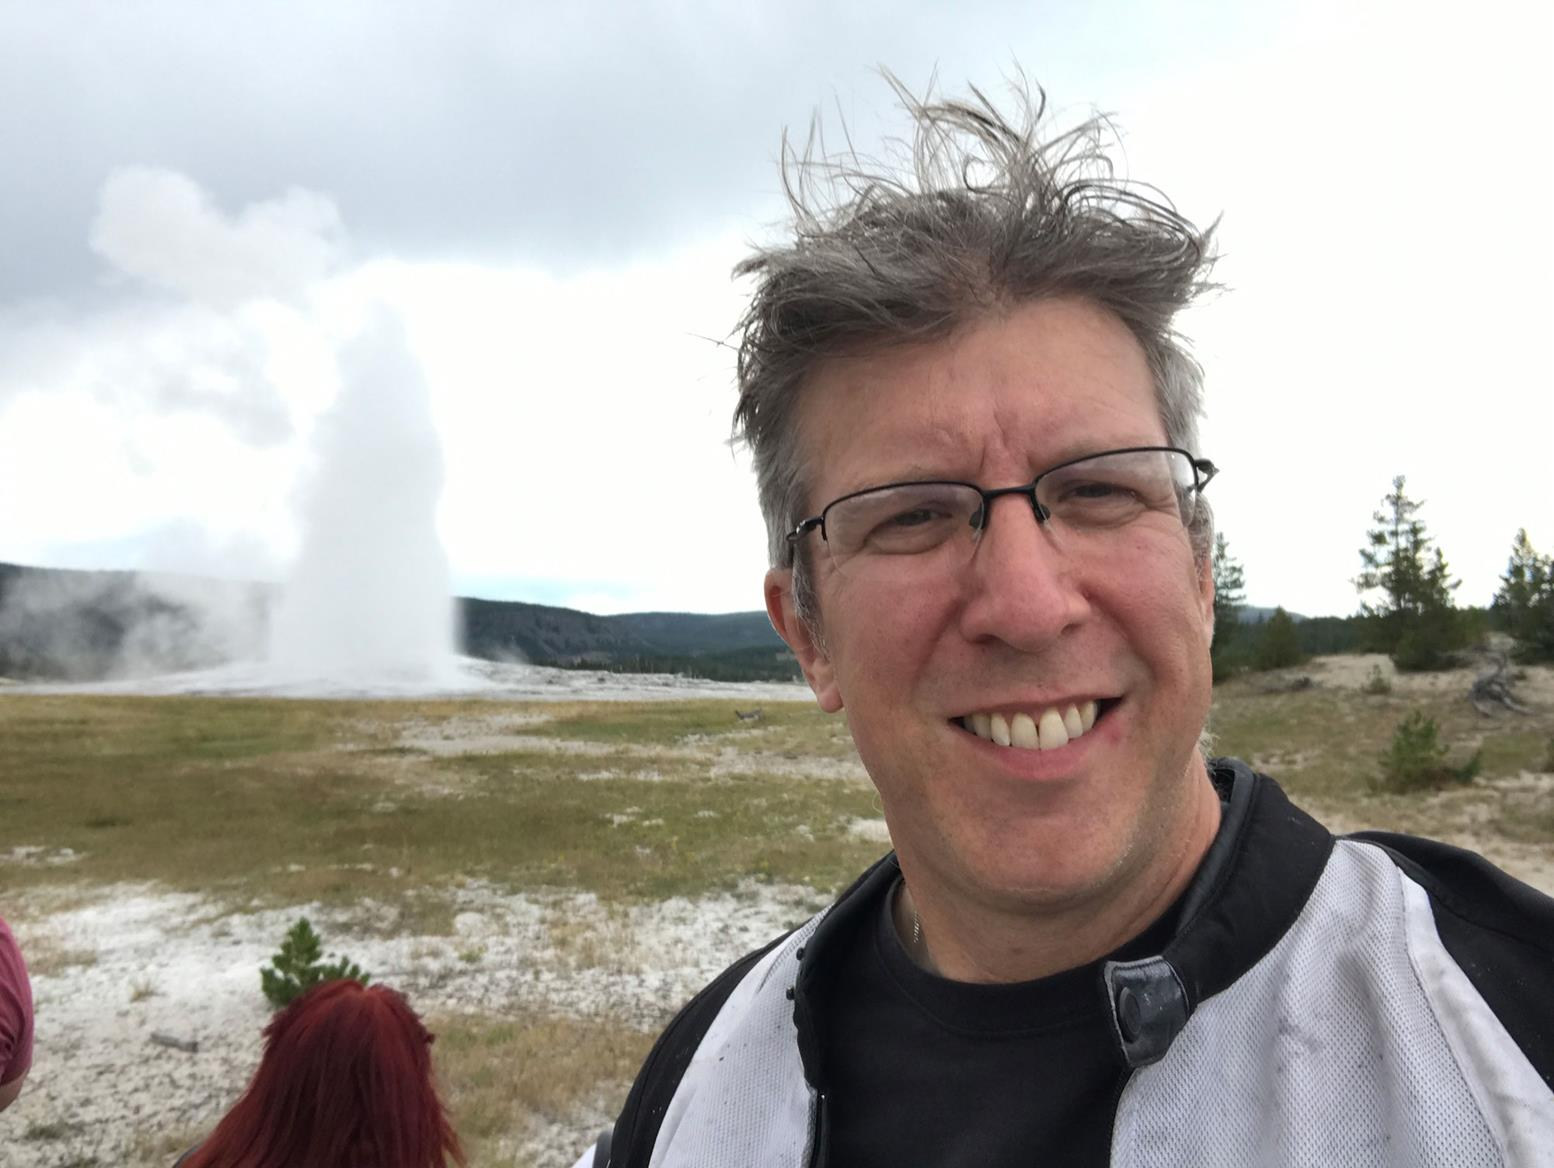 Simon in front of Old Faithful